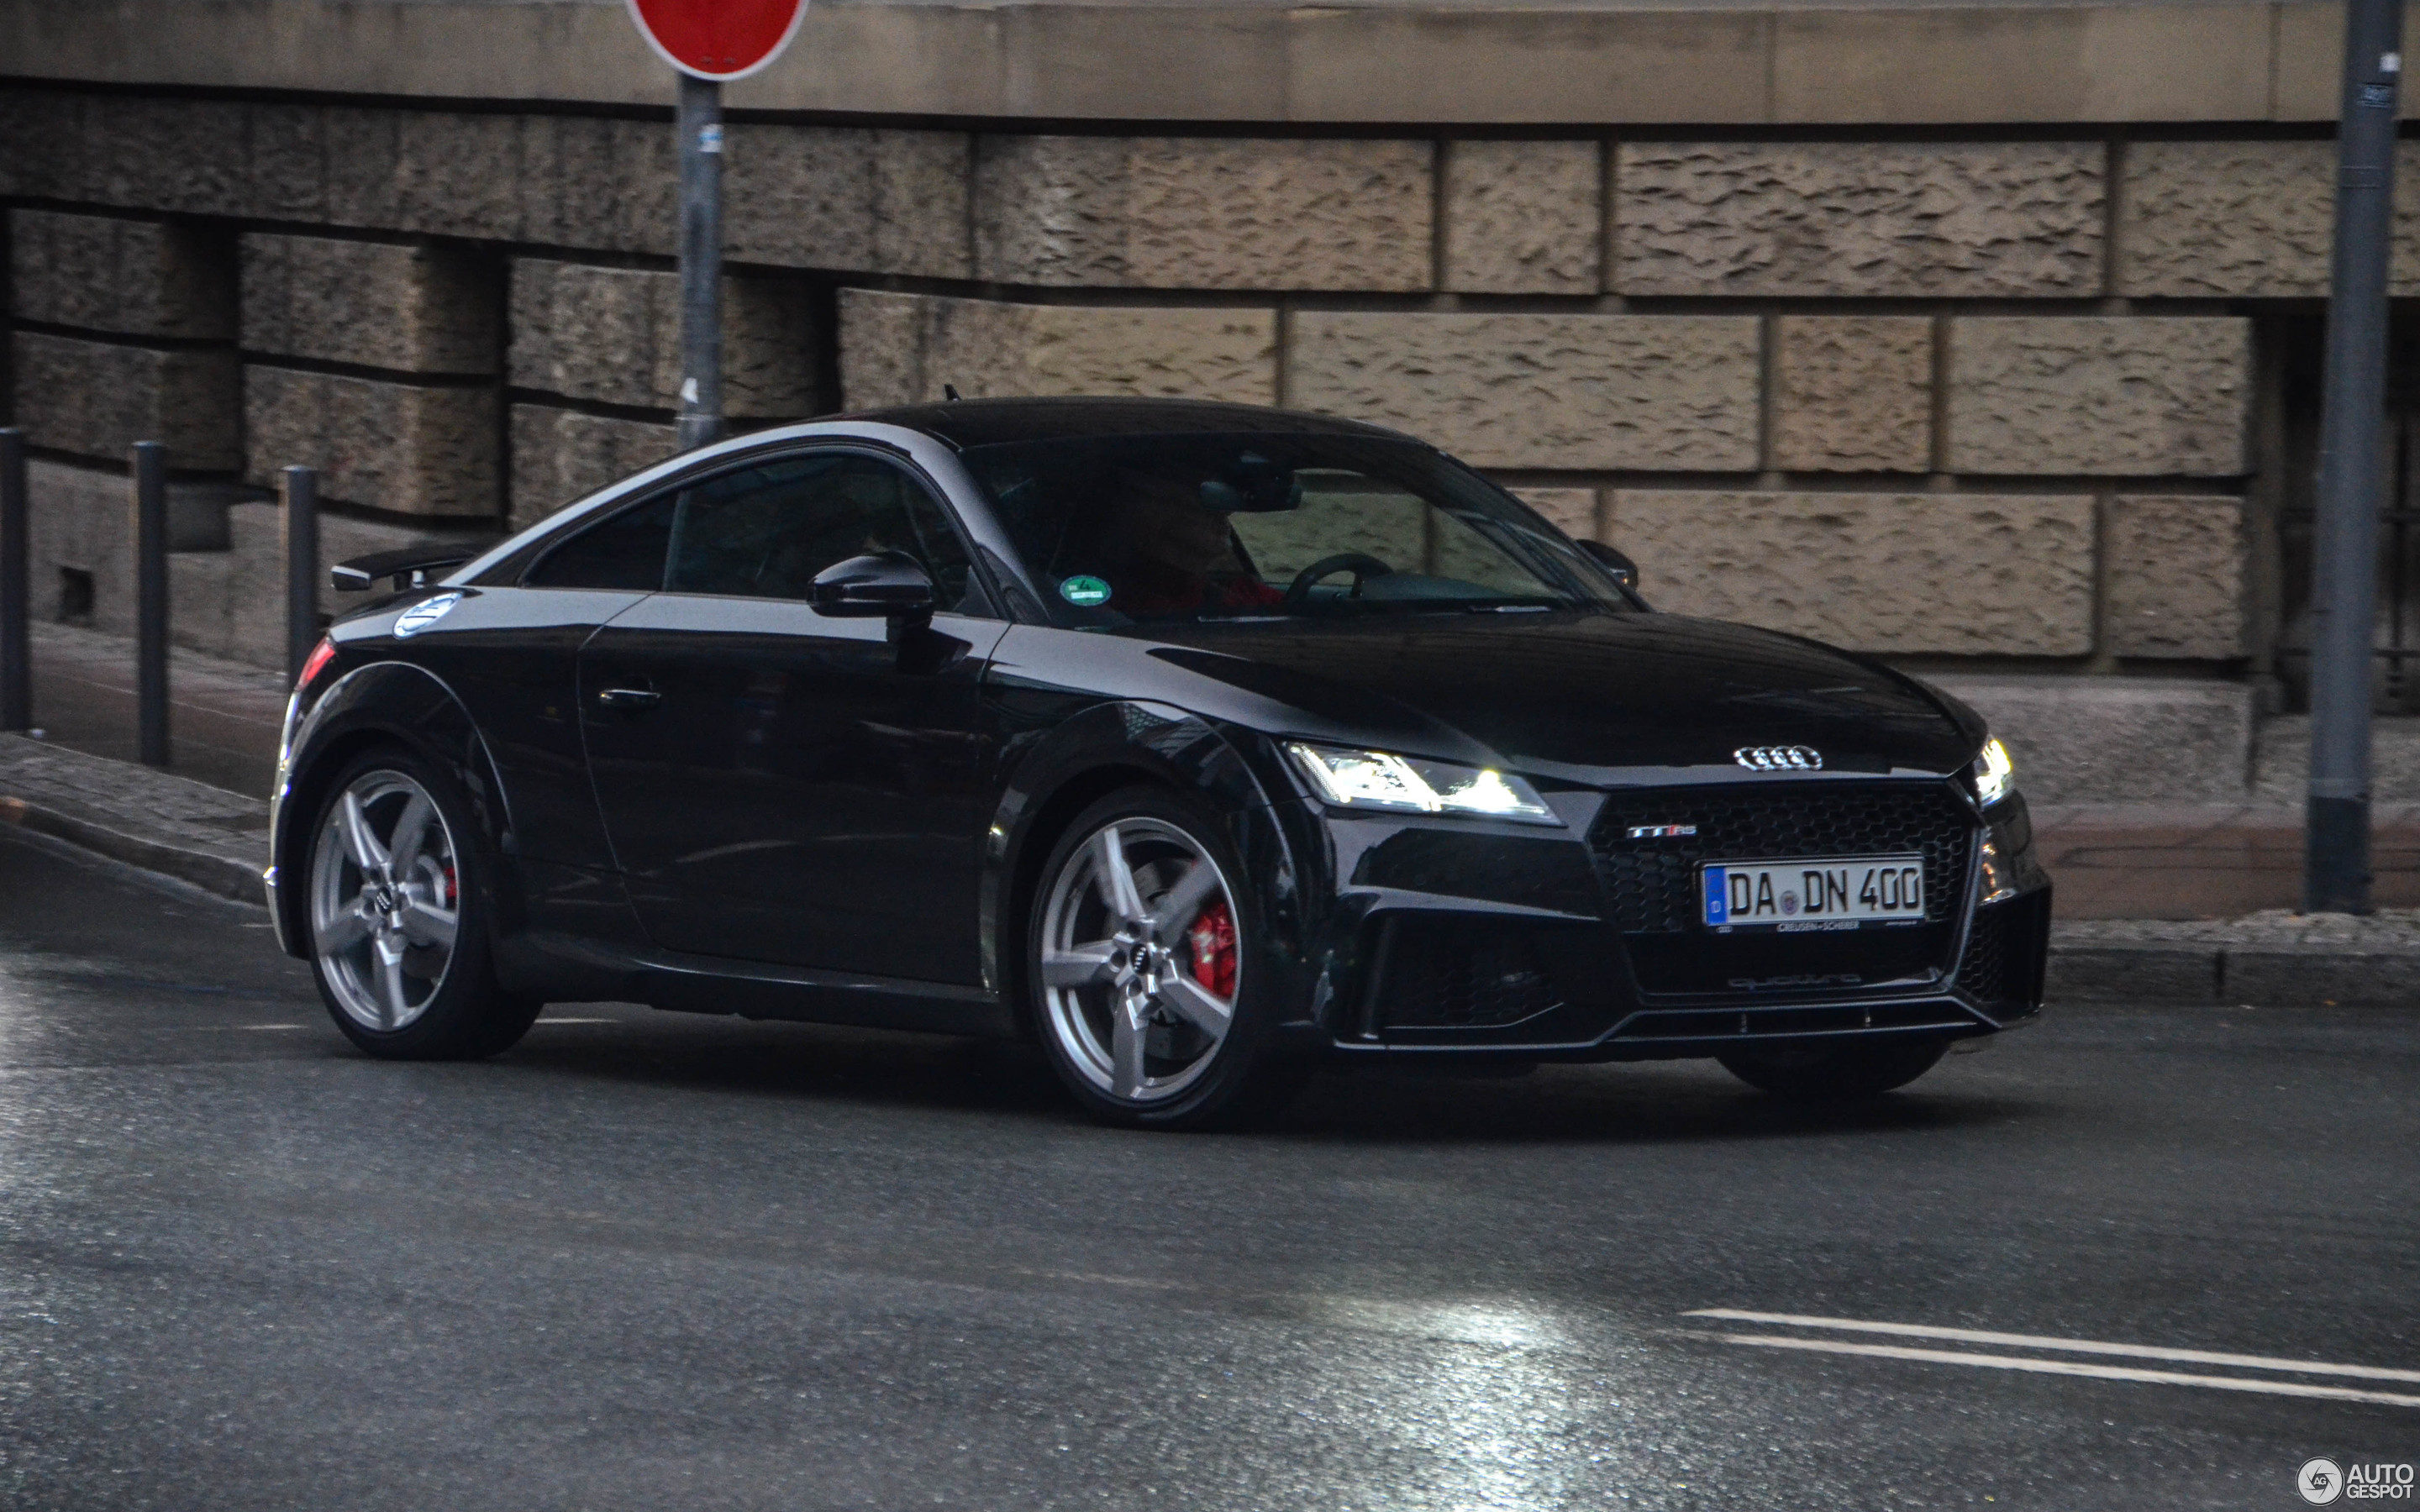 Audi TT-RS 2017 - 17 December 2016 - Autogespot